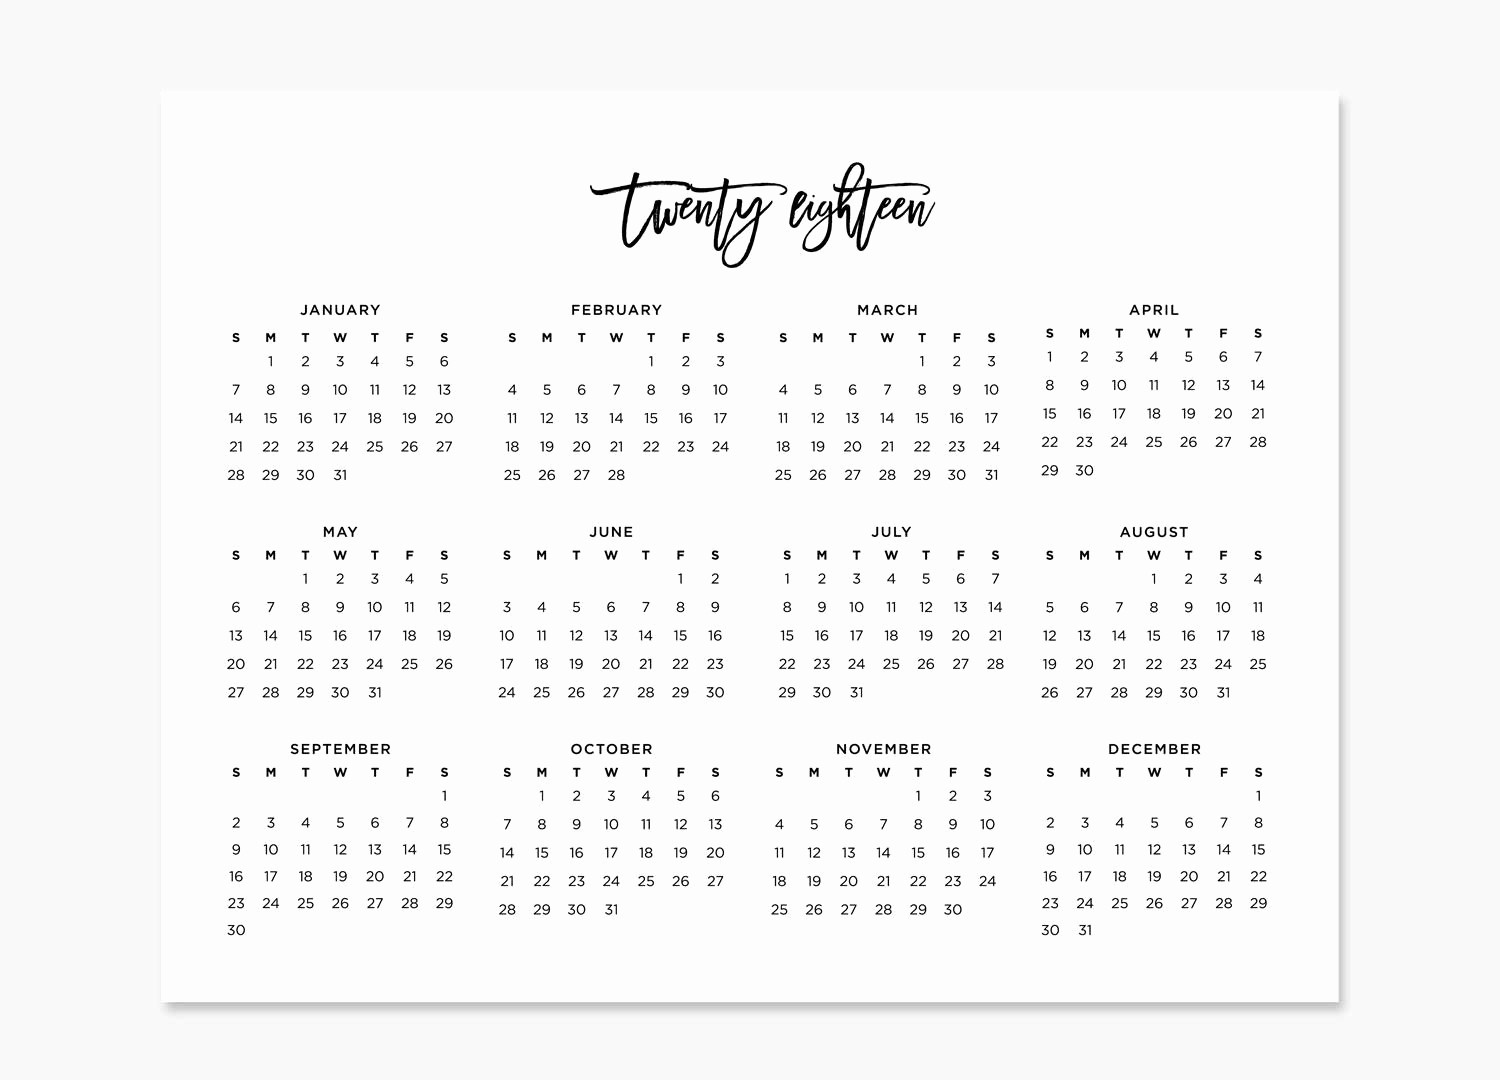 At A Glance Yearly Calendars Unique Year at A Glance 2018 Calendar Printable